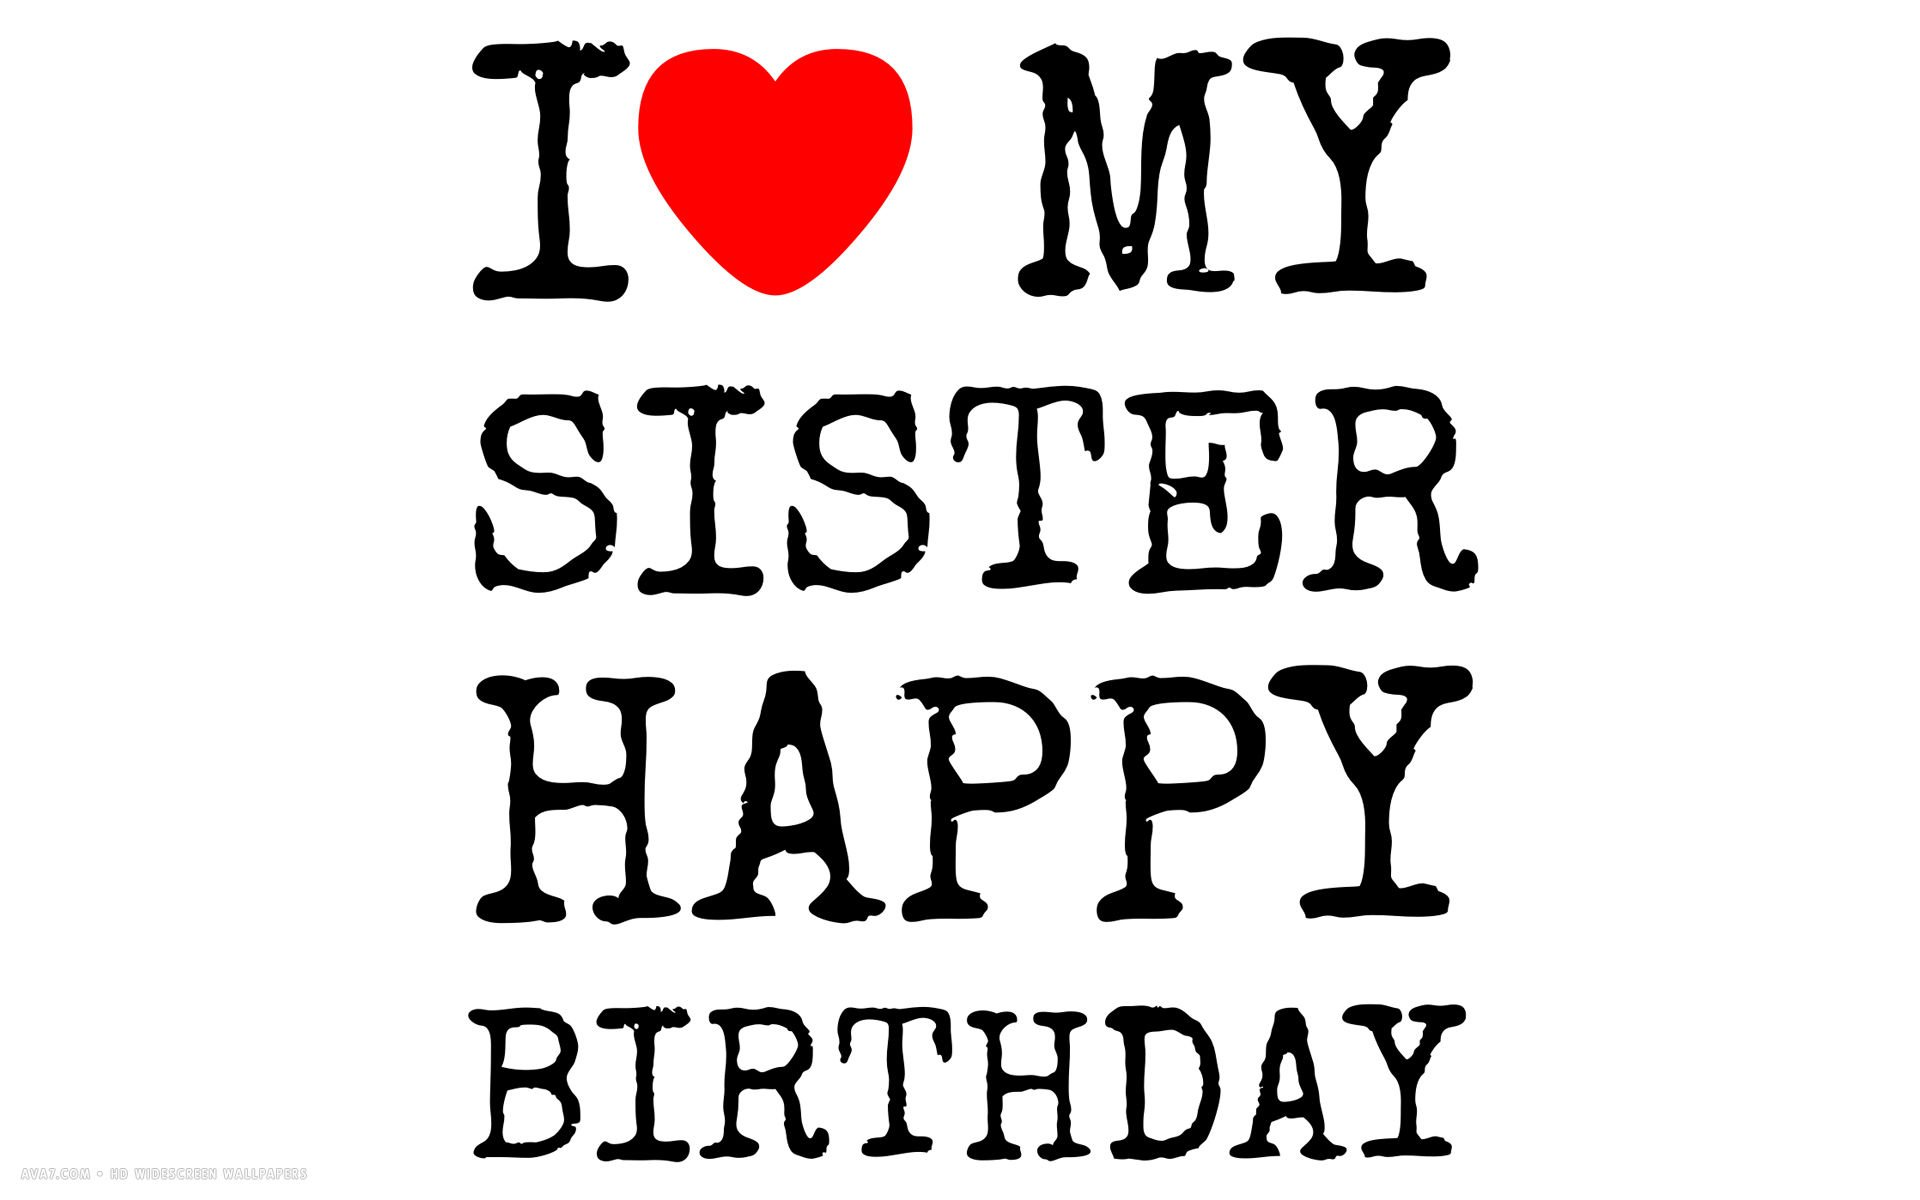 My Love Birthday Wallpaper : I Love My Sister Wallpapers - WallpaperSafari